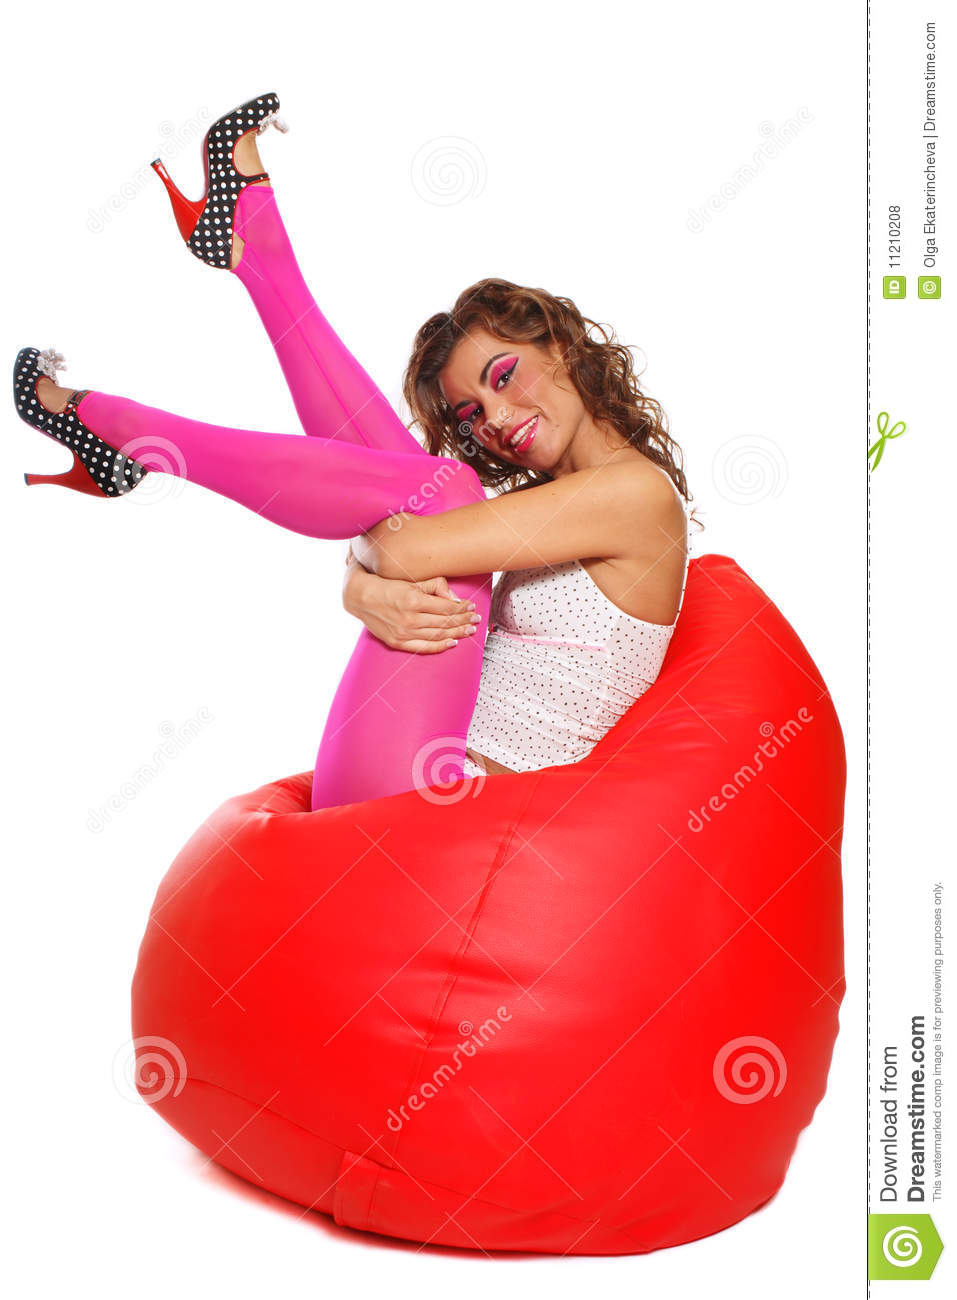 Girl sitting in bean bag stock photo Image of allure